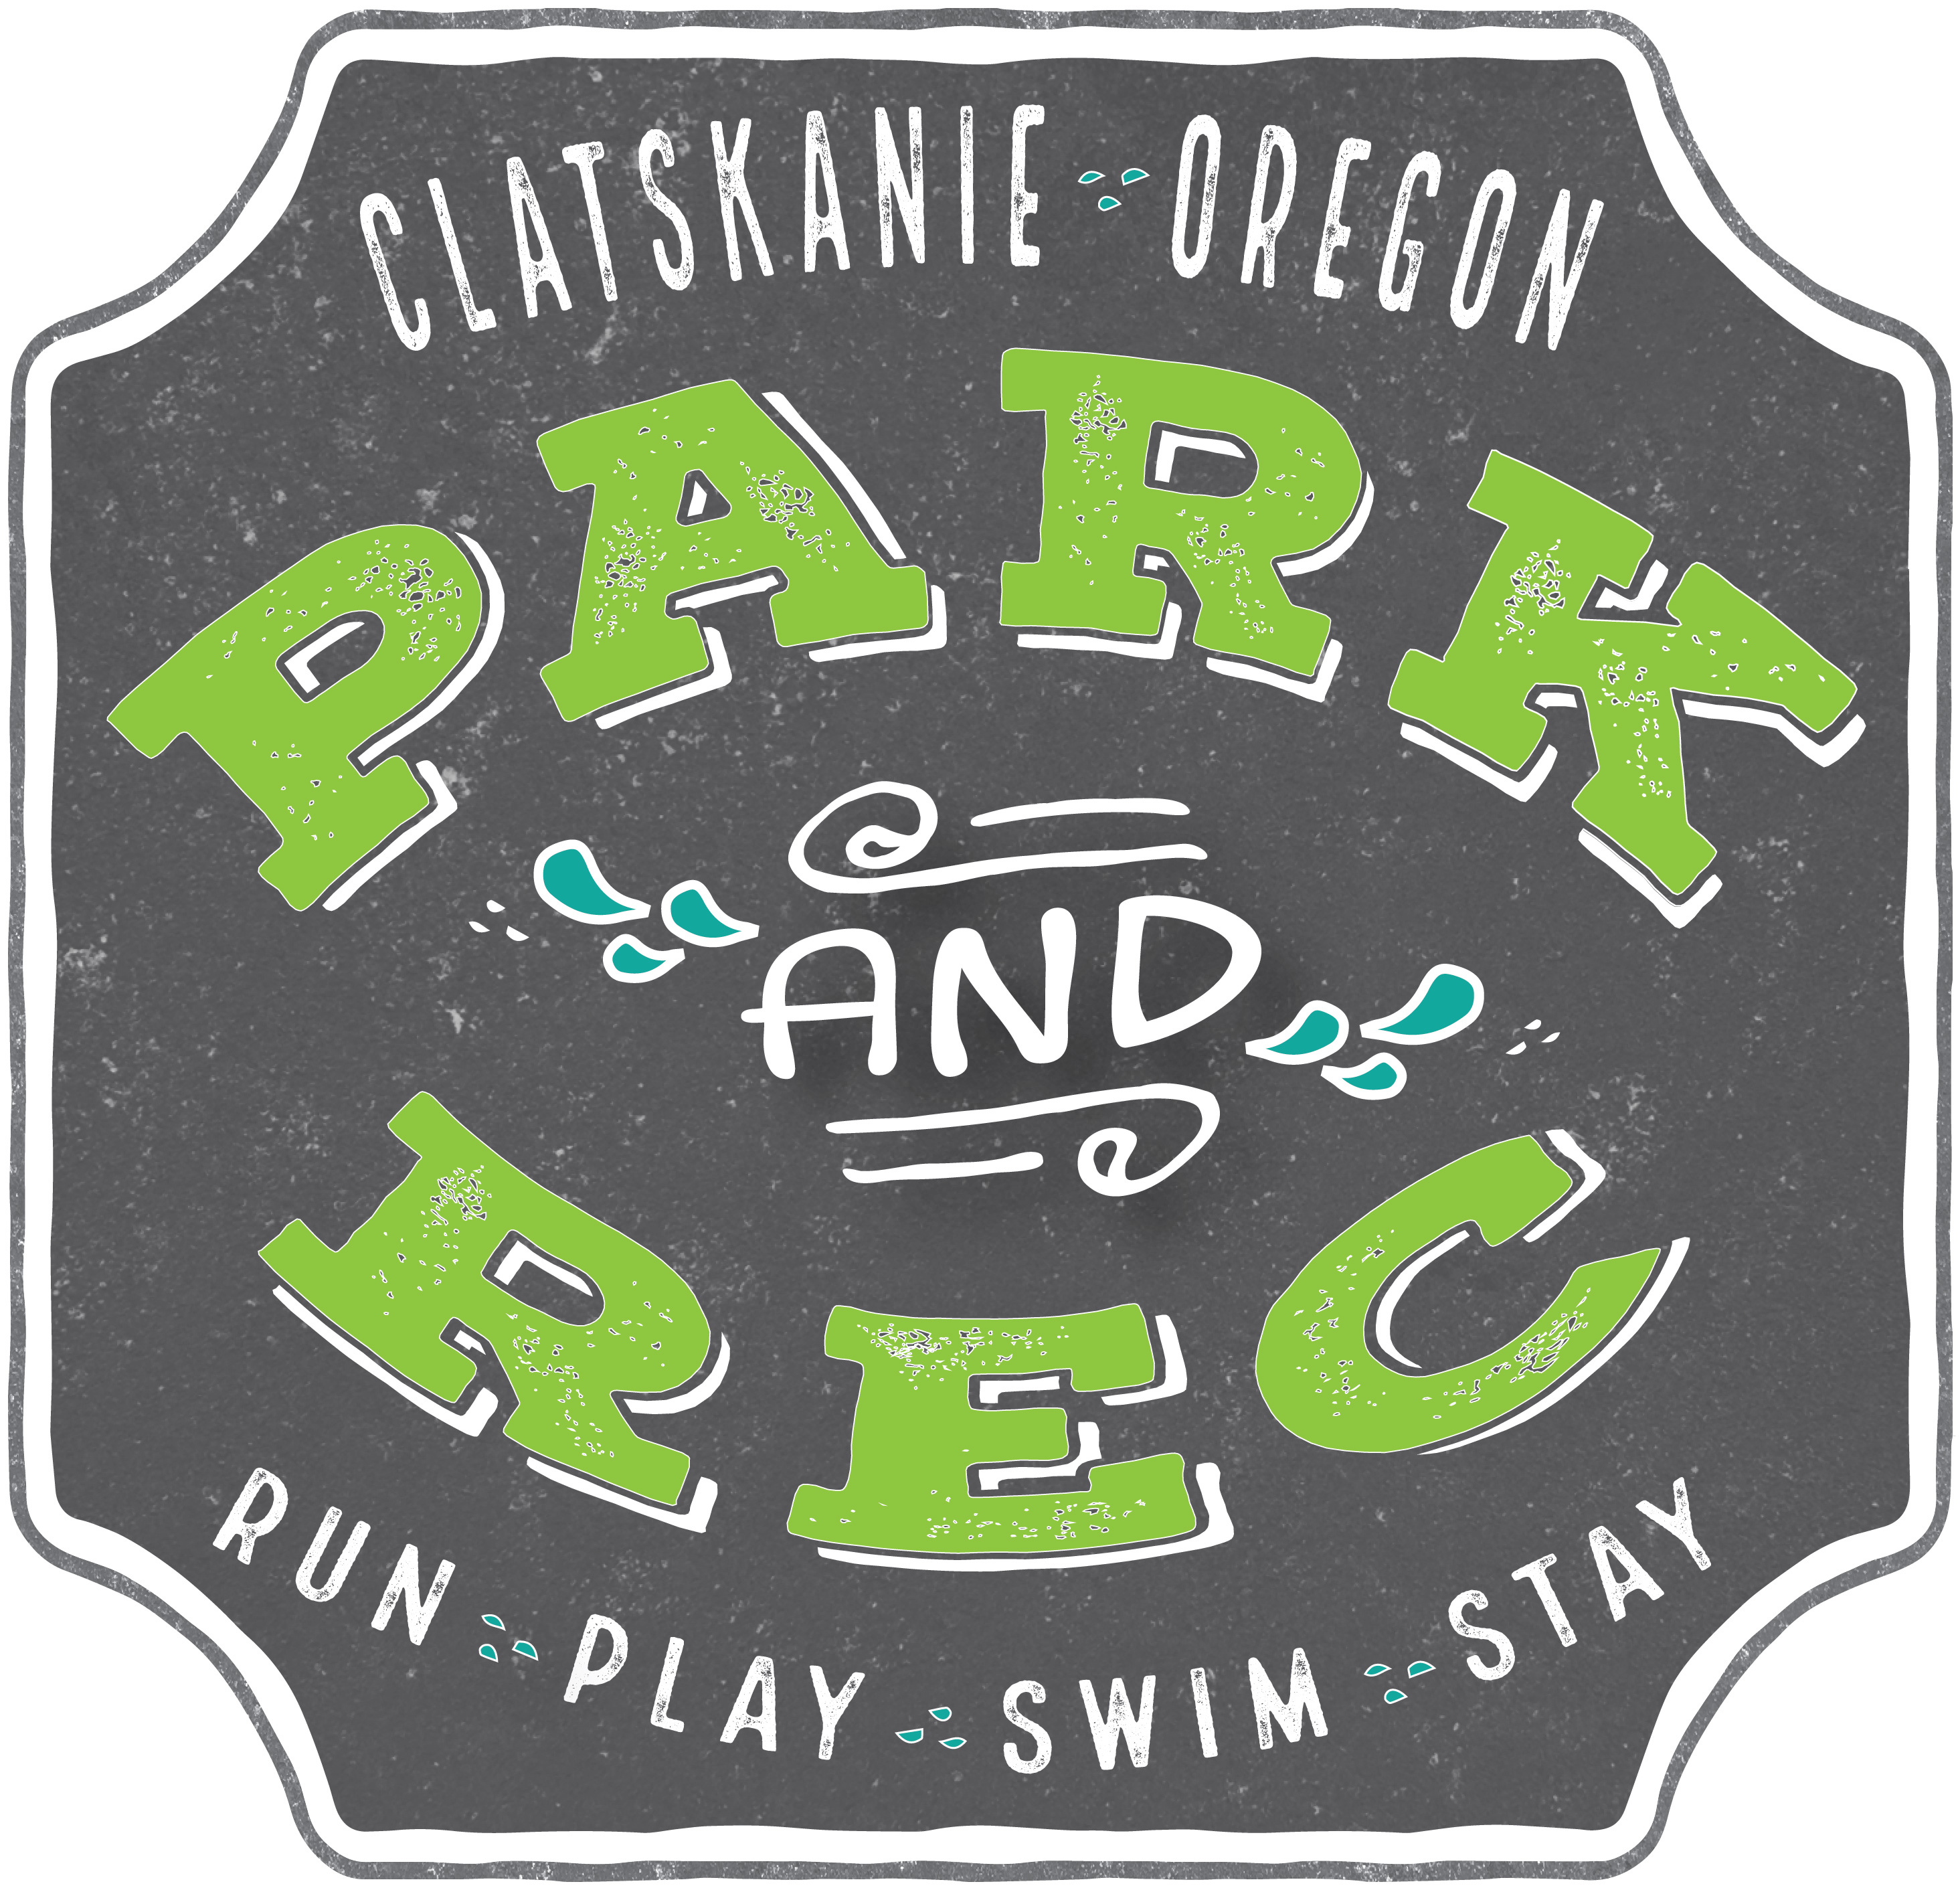 Clatskanie Park & Recreation District